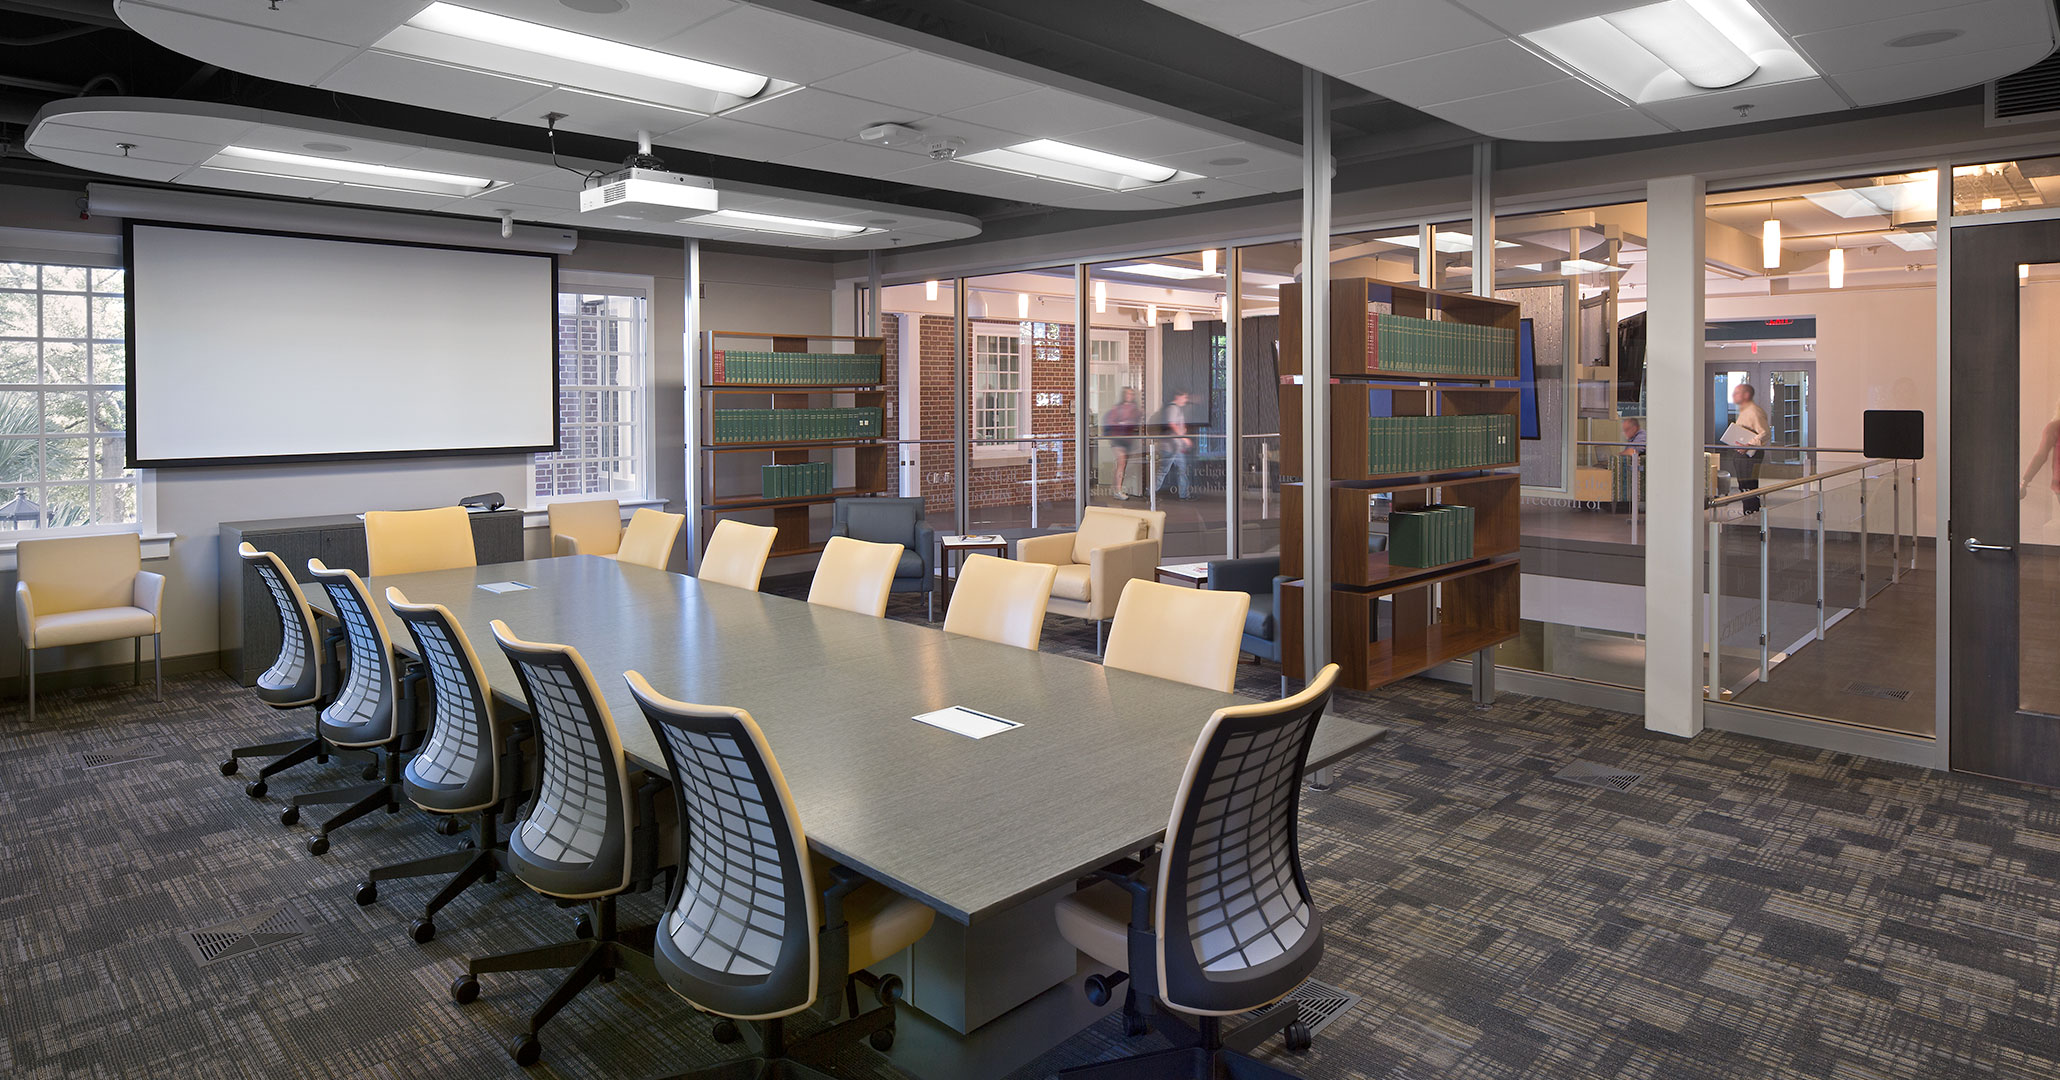 University of South Carolina hired Columbia, SC architects Boudreaux to design classrooms at the School of Journalism.